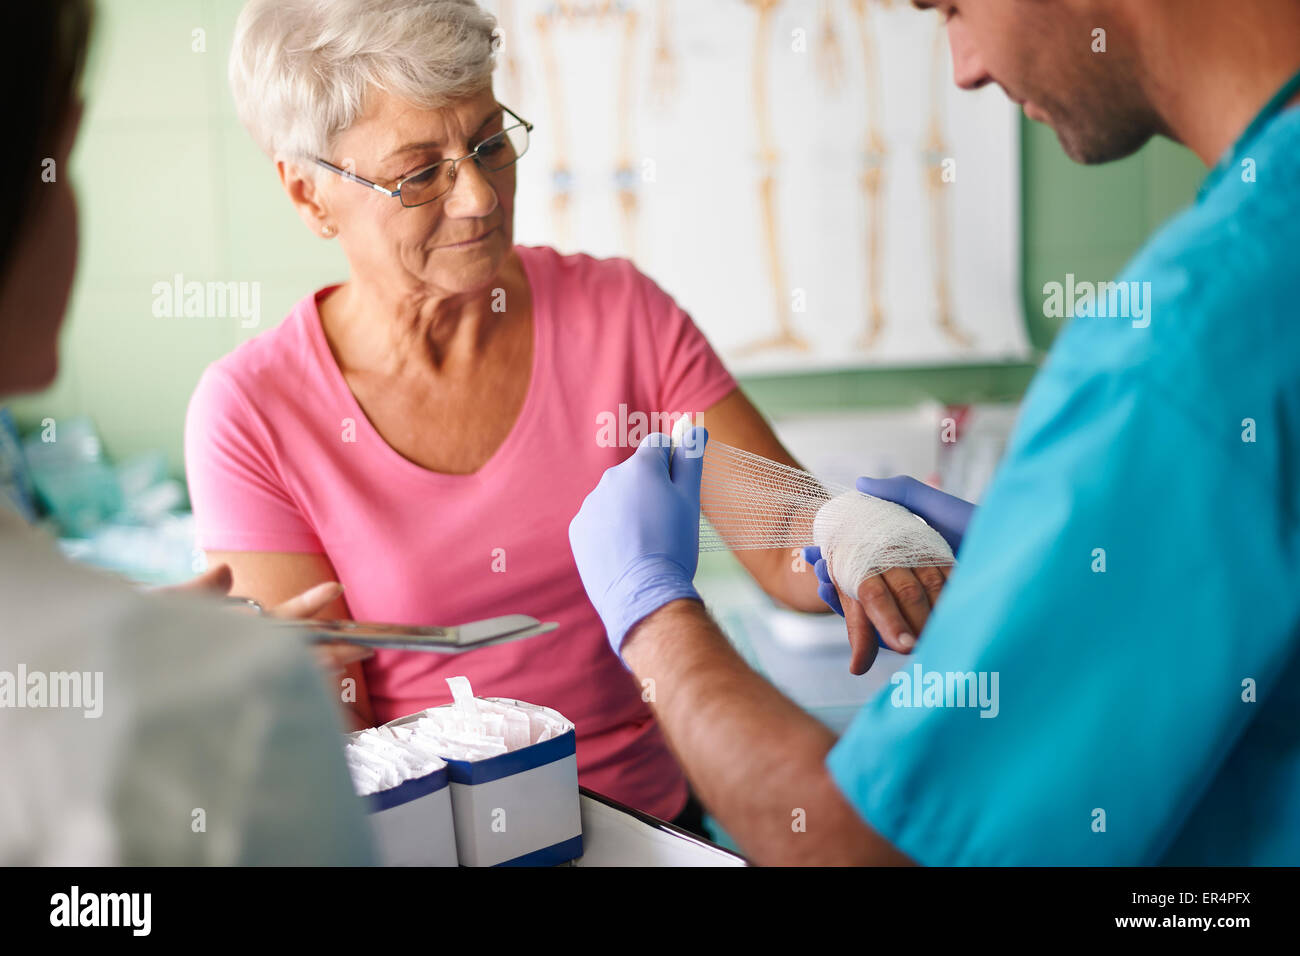 Senior woman with bandage on the hand. Debica, Poland - Stock Image